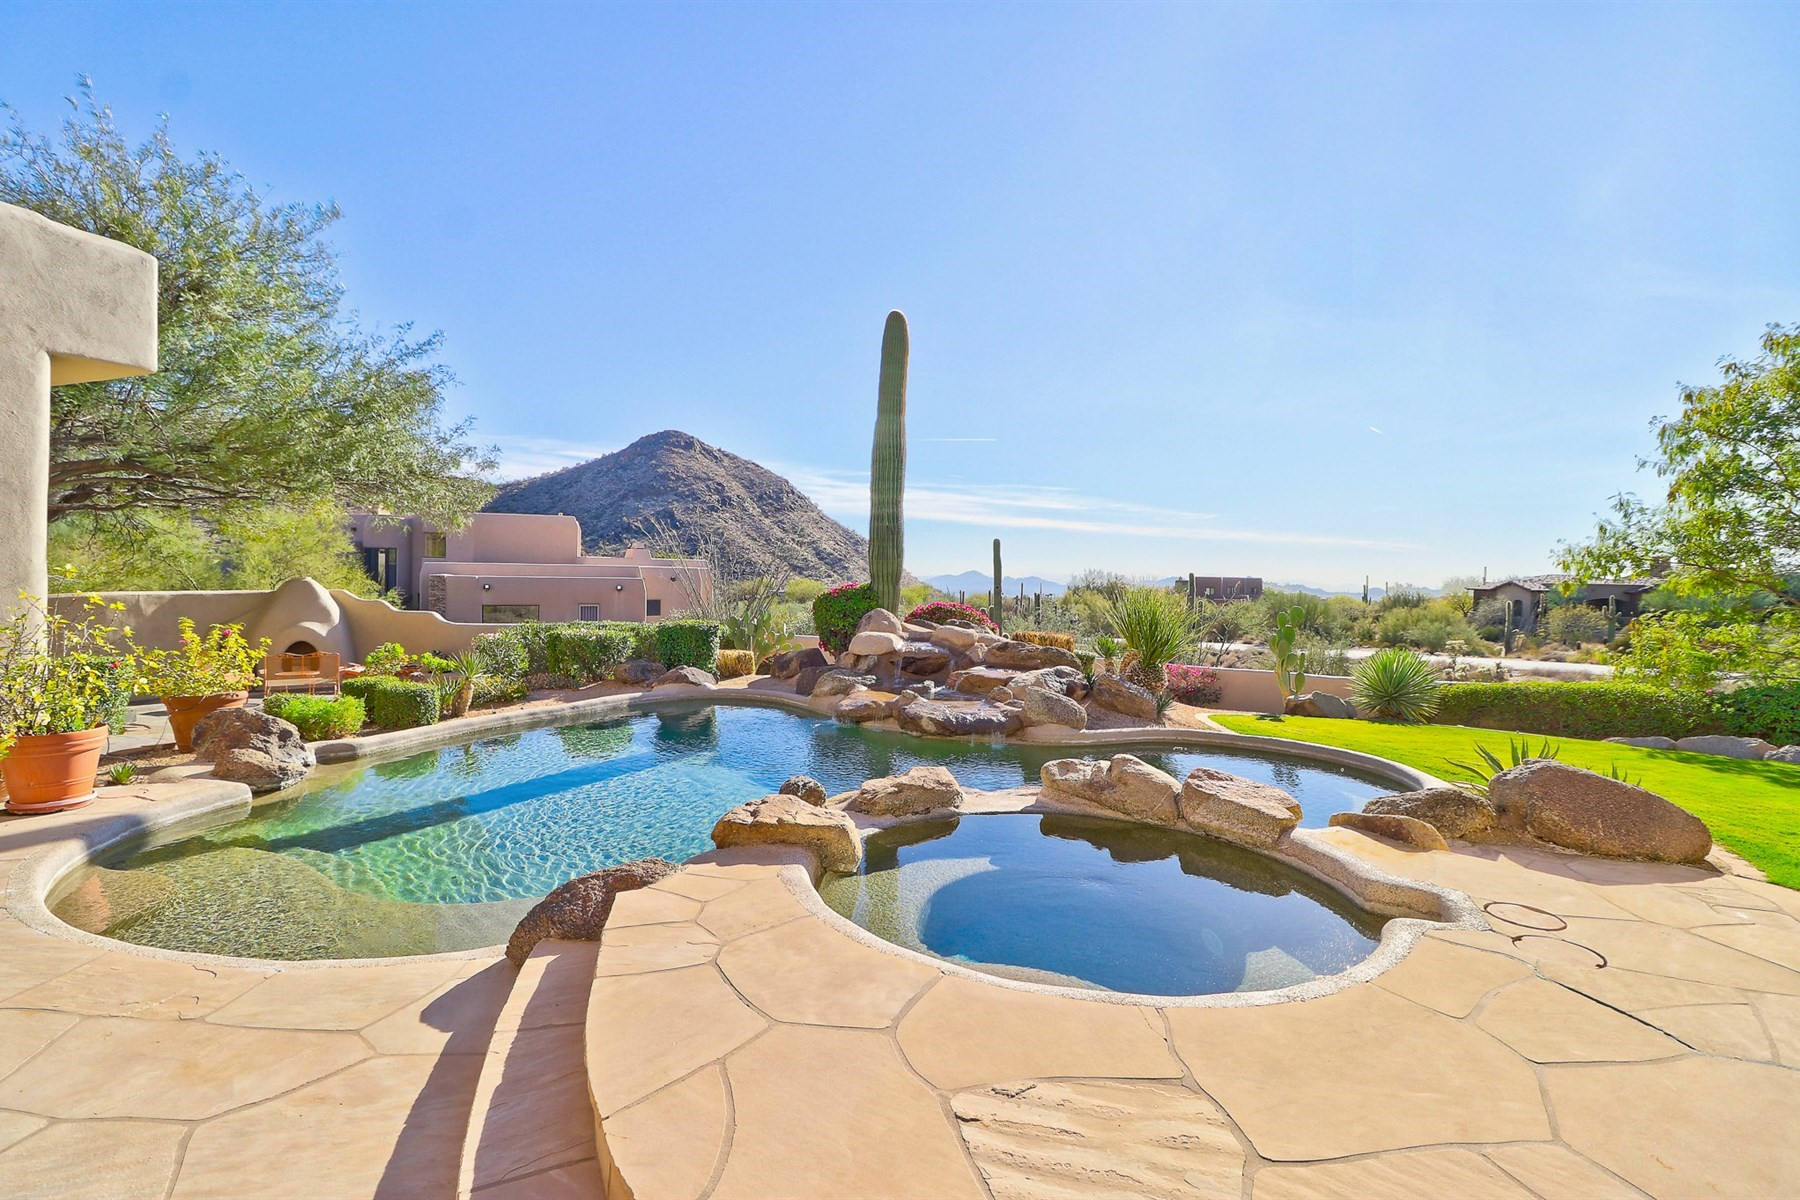 Single Family Home for Sale at Canyon Heights 10029 E Calle De Las Brisas, Scottsdale, Arizona, 85255 United States